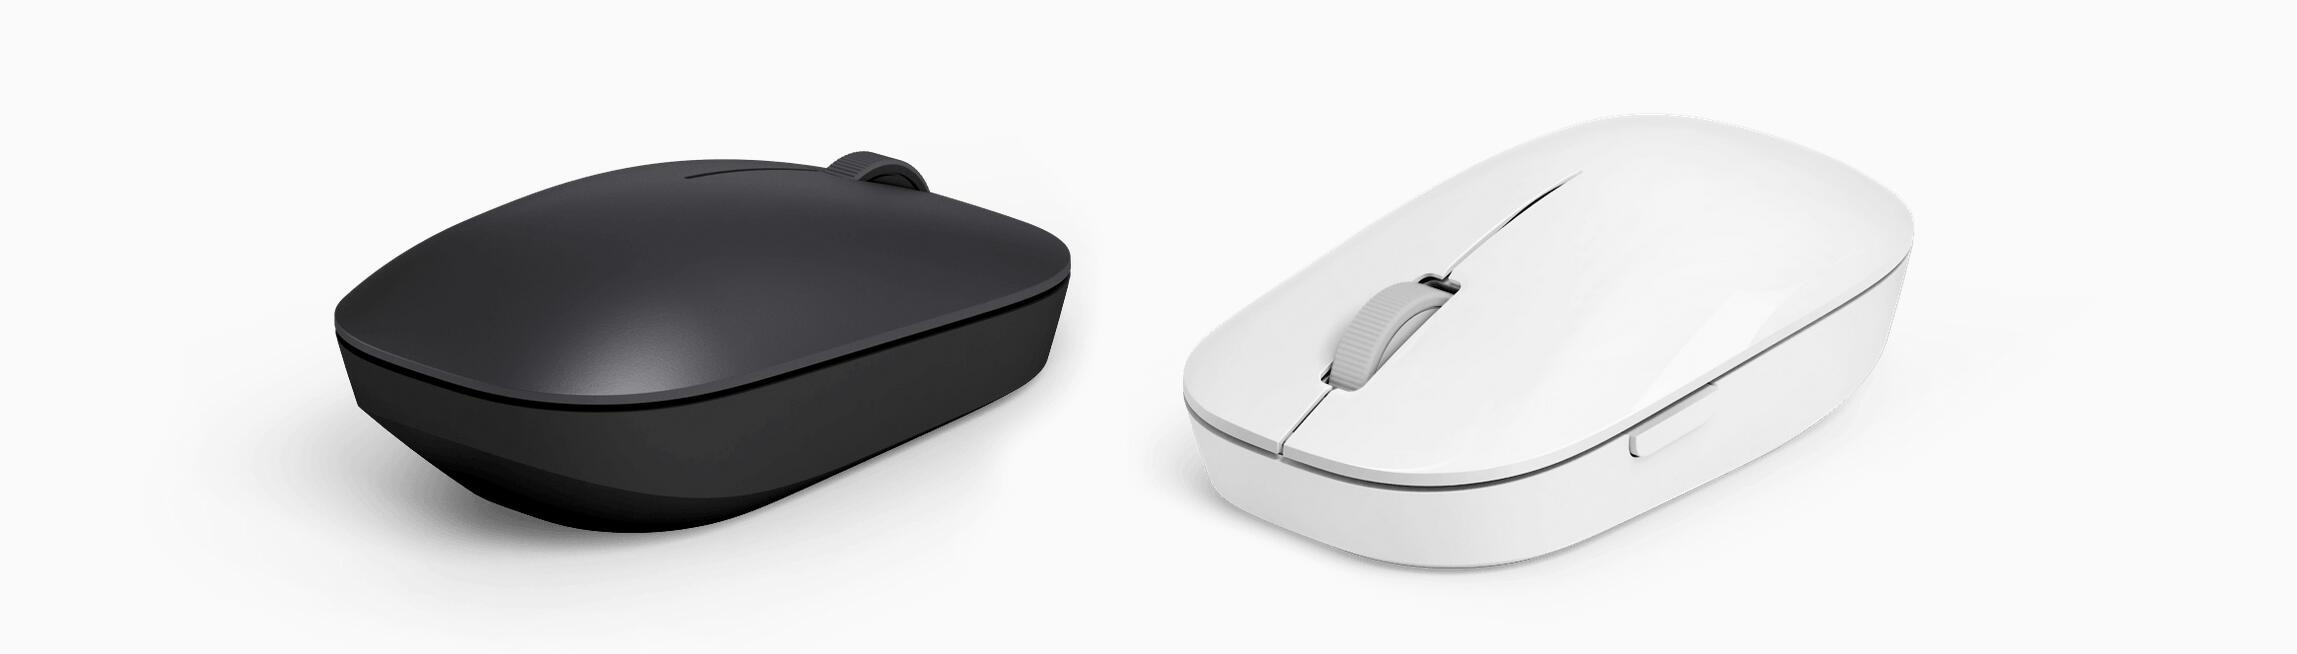 Mi Wireless Mouse 2